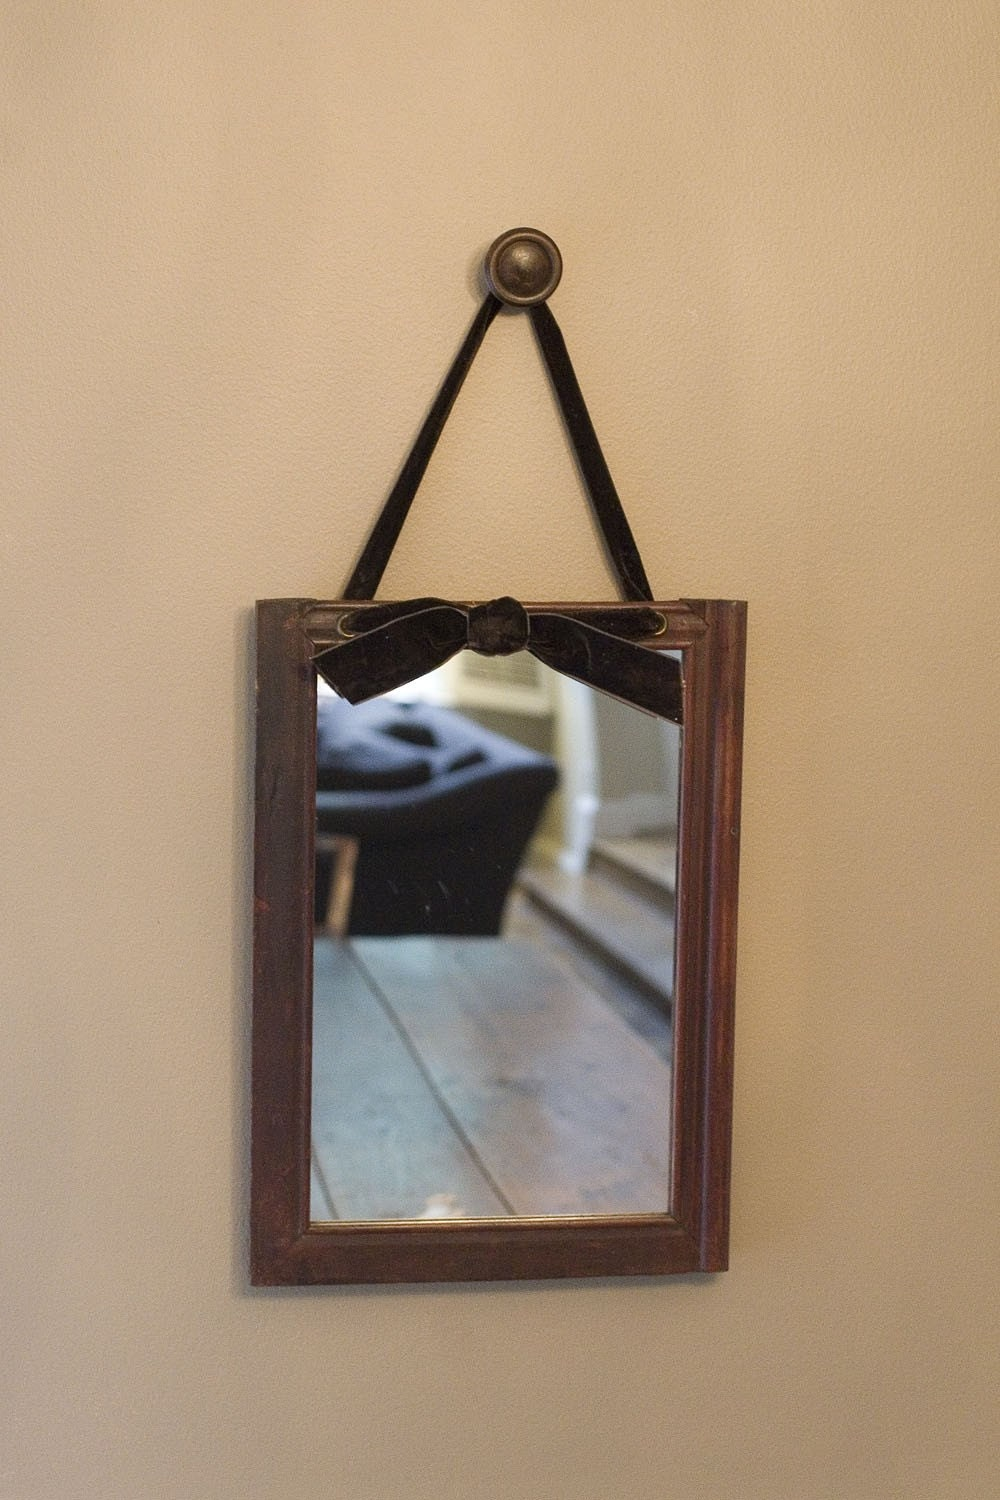 Decorative Hanging Wood Ribbon Mirror Or Chalkboard By